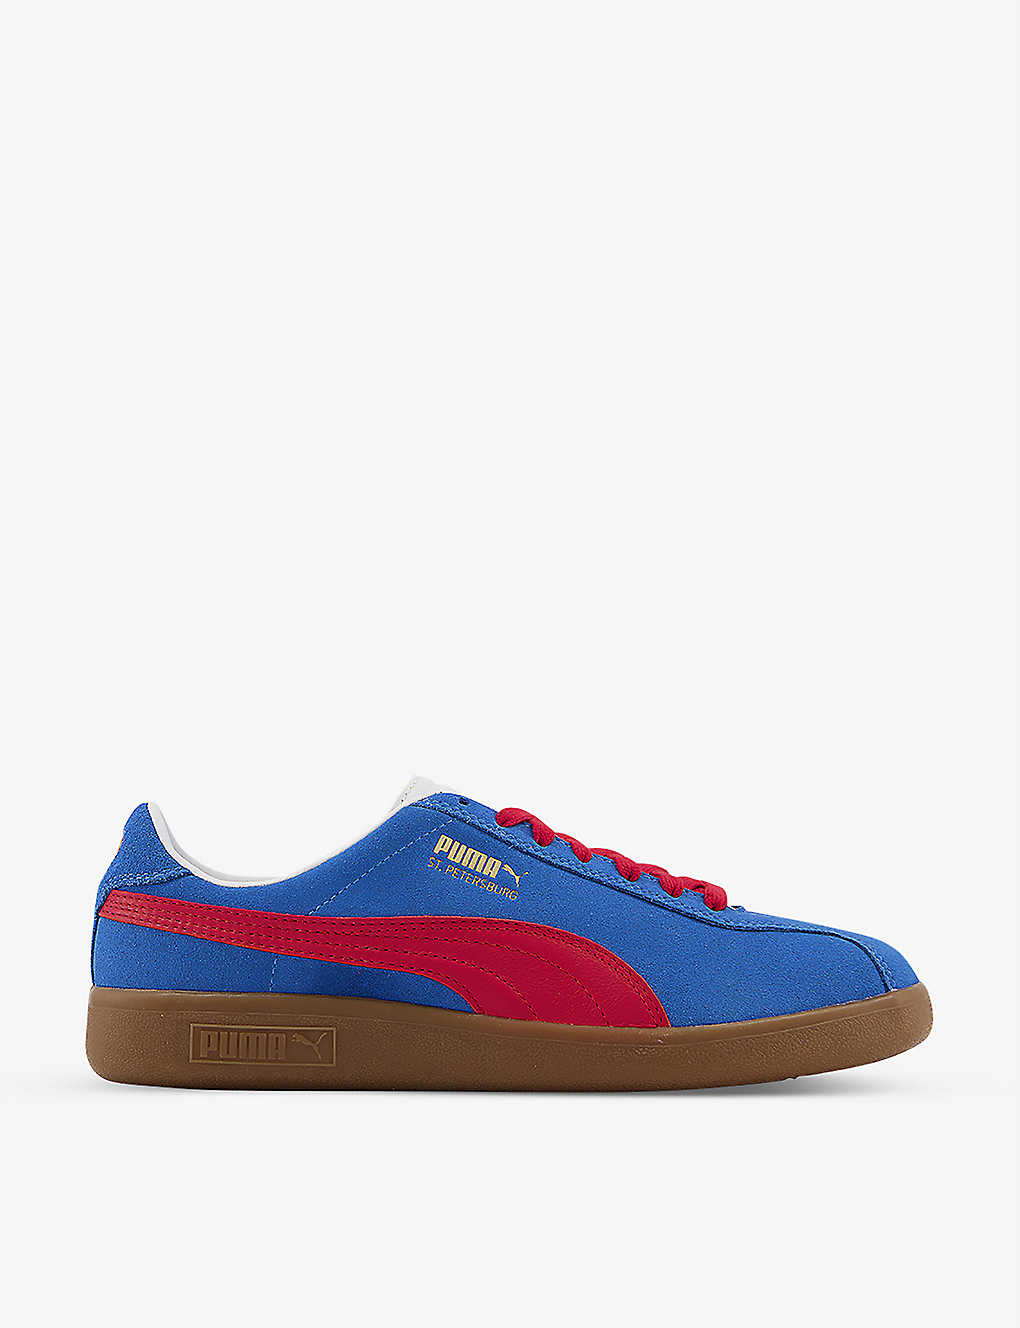 PUMA: Bluebird St. Petersburg suede trainers